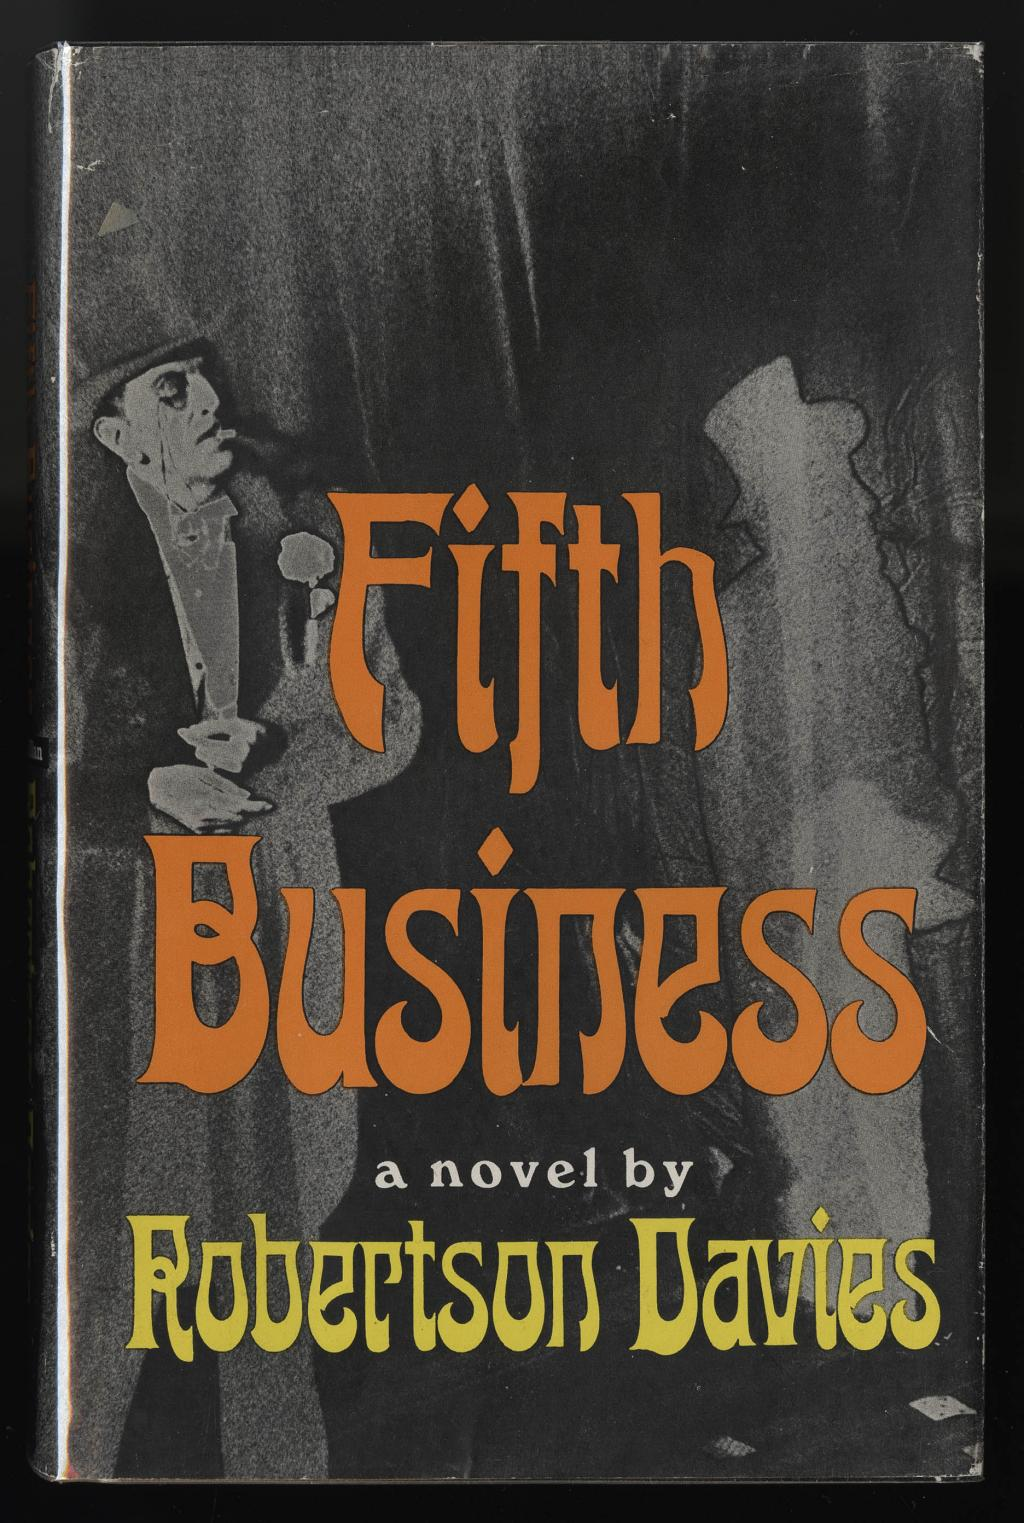 an analysis of the idea of change in the fifth business by robertson davies Ultimately boils down to the development of an idea  change is inevitable and  your literary analysis essay should have a concluding paragraph that gives.